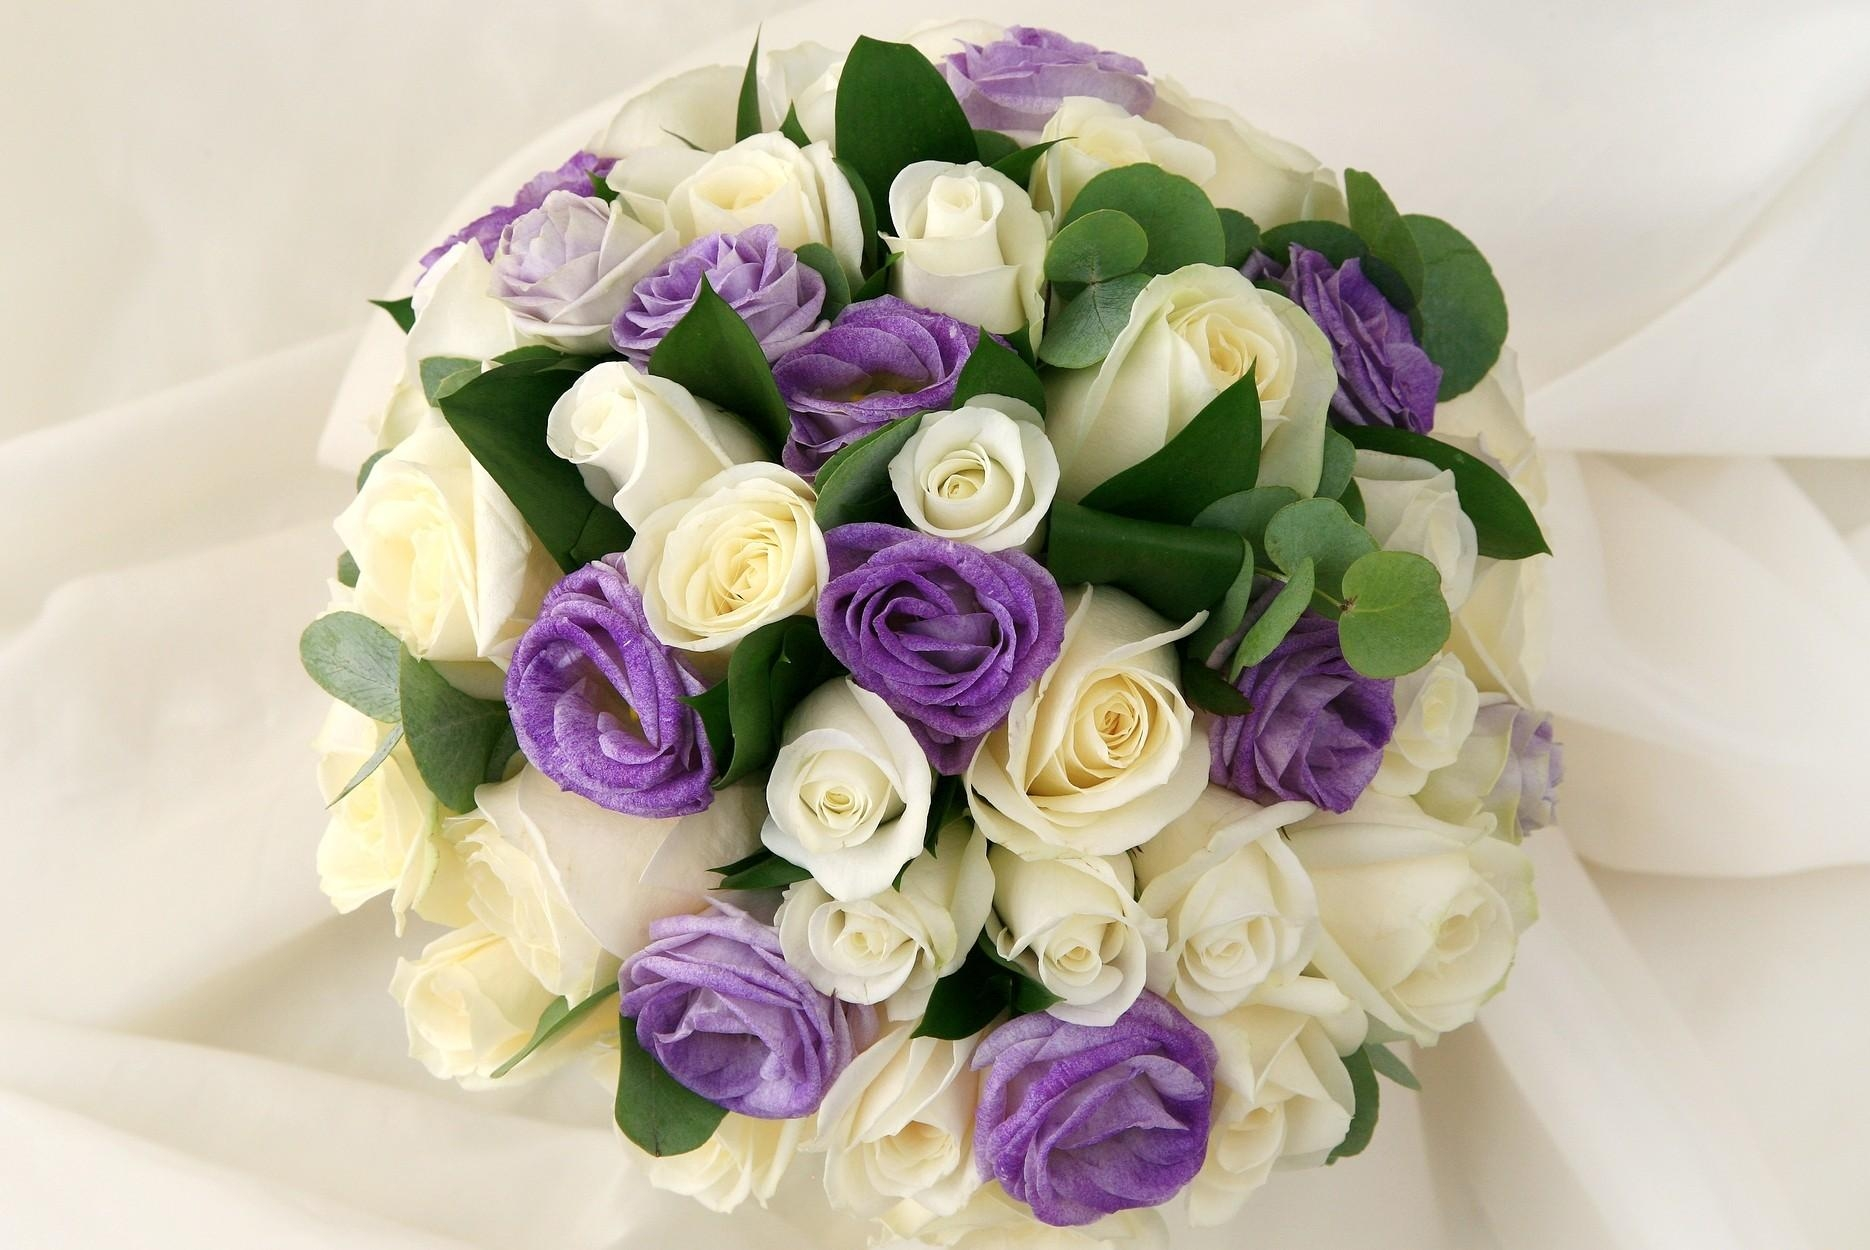 107657 download wallpaper Flowers, Lisianthus Russell, Lisiantus Russell, Leaves, Bouquet, Handsomely, It's Beautiful, Roses screensavers and pictures for free